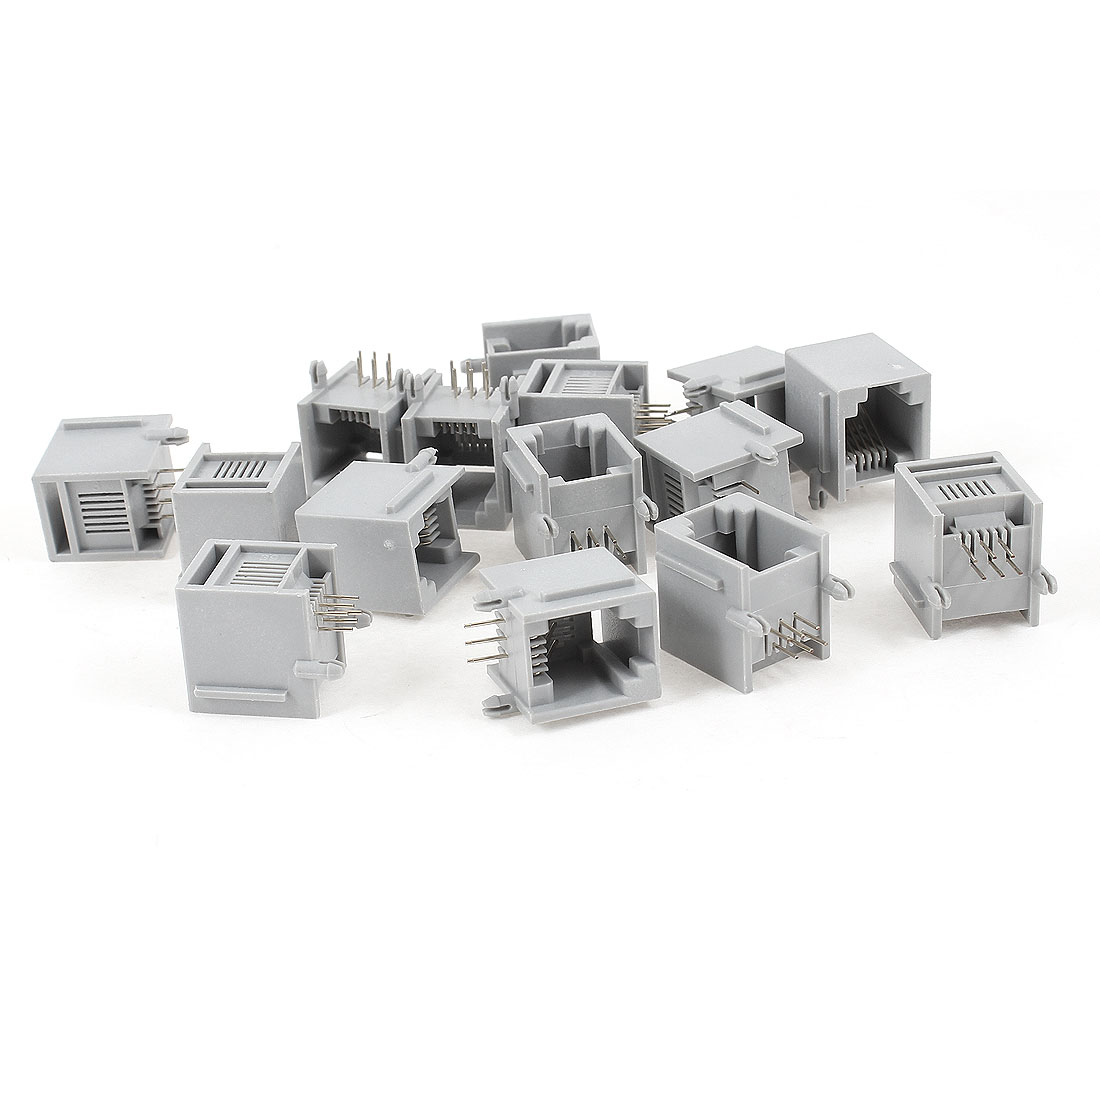 15 Pcs Gray Plastic RJ12 6P6C 6 Round Pin Network Modular PCB Connector Jacks